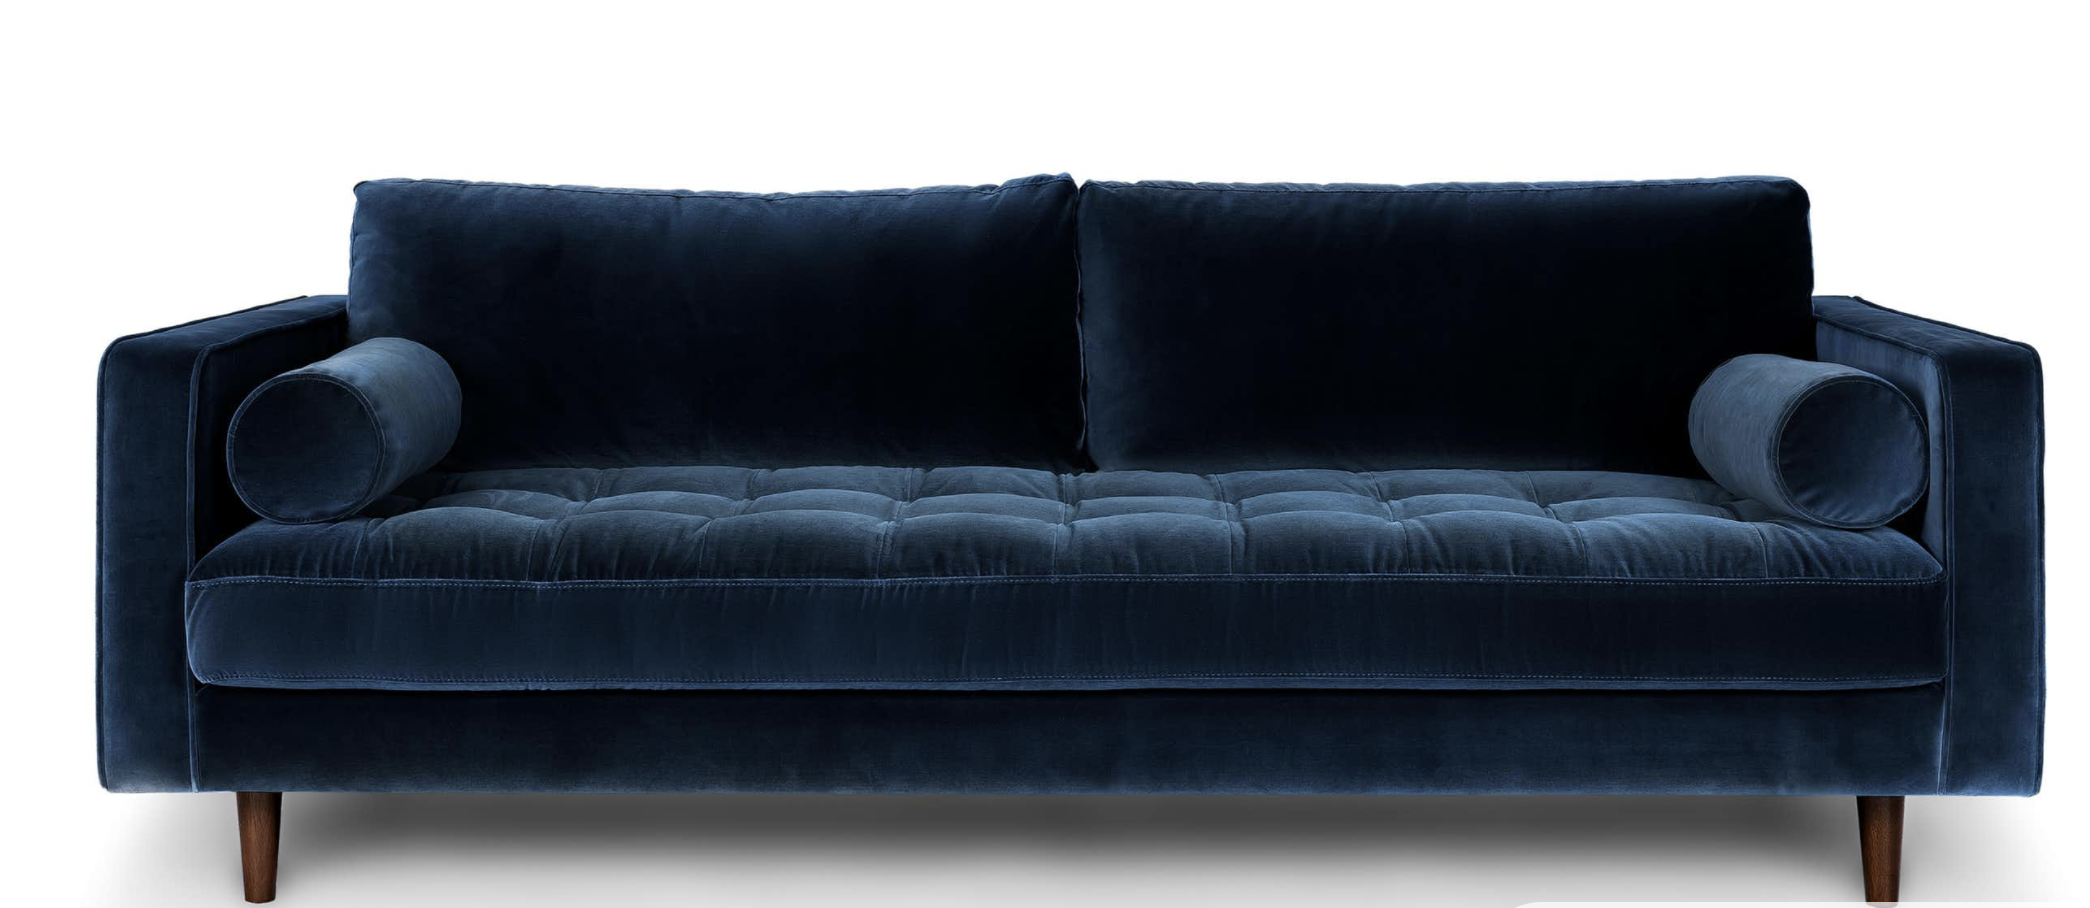 Blue Velvet Tufted Sofa  Upholstered   Article Sven Modern Furniture is part of Modern Home Accents Couch - There's a reason this is our most popular sofa  This modern take on a midcentury classic features crisp lines, a tufted benchseat, and two luxuriously stuffed back cushions  Two matching round bolsters complete the look